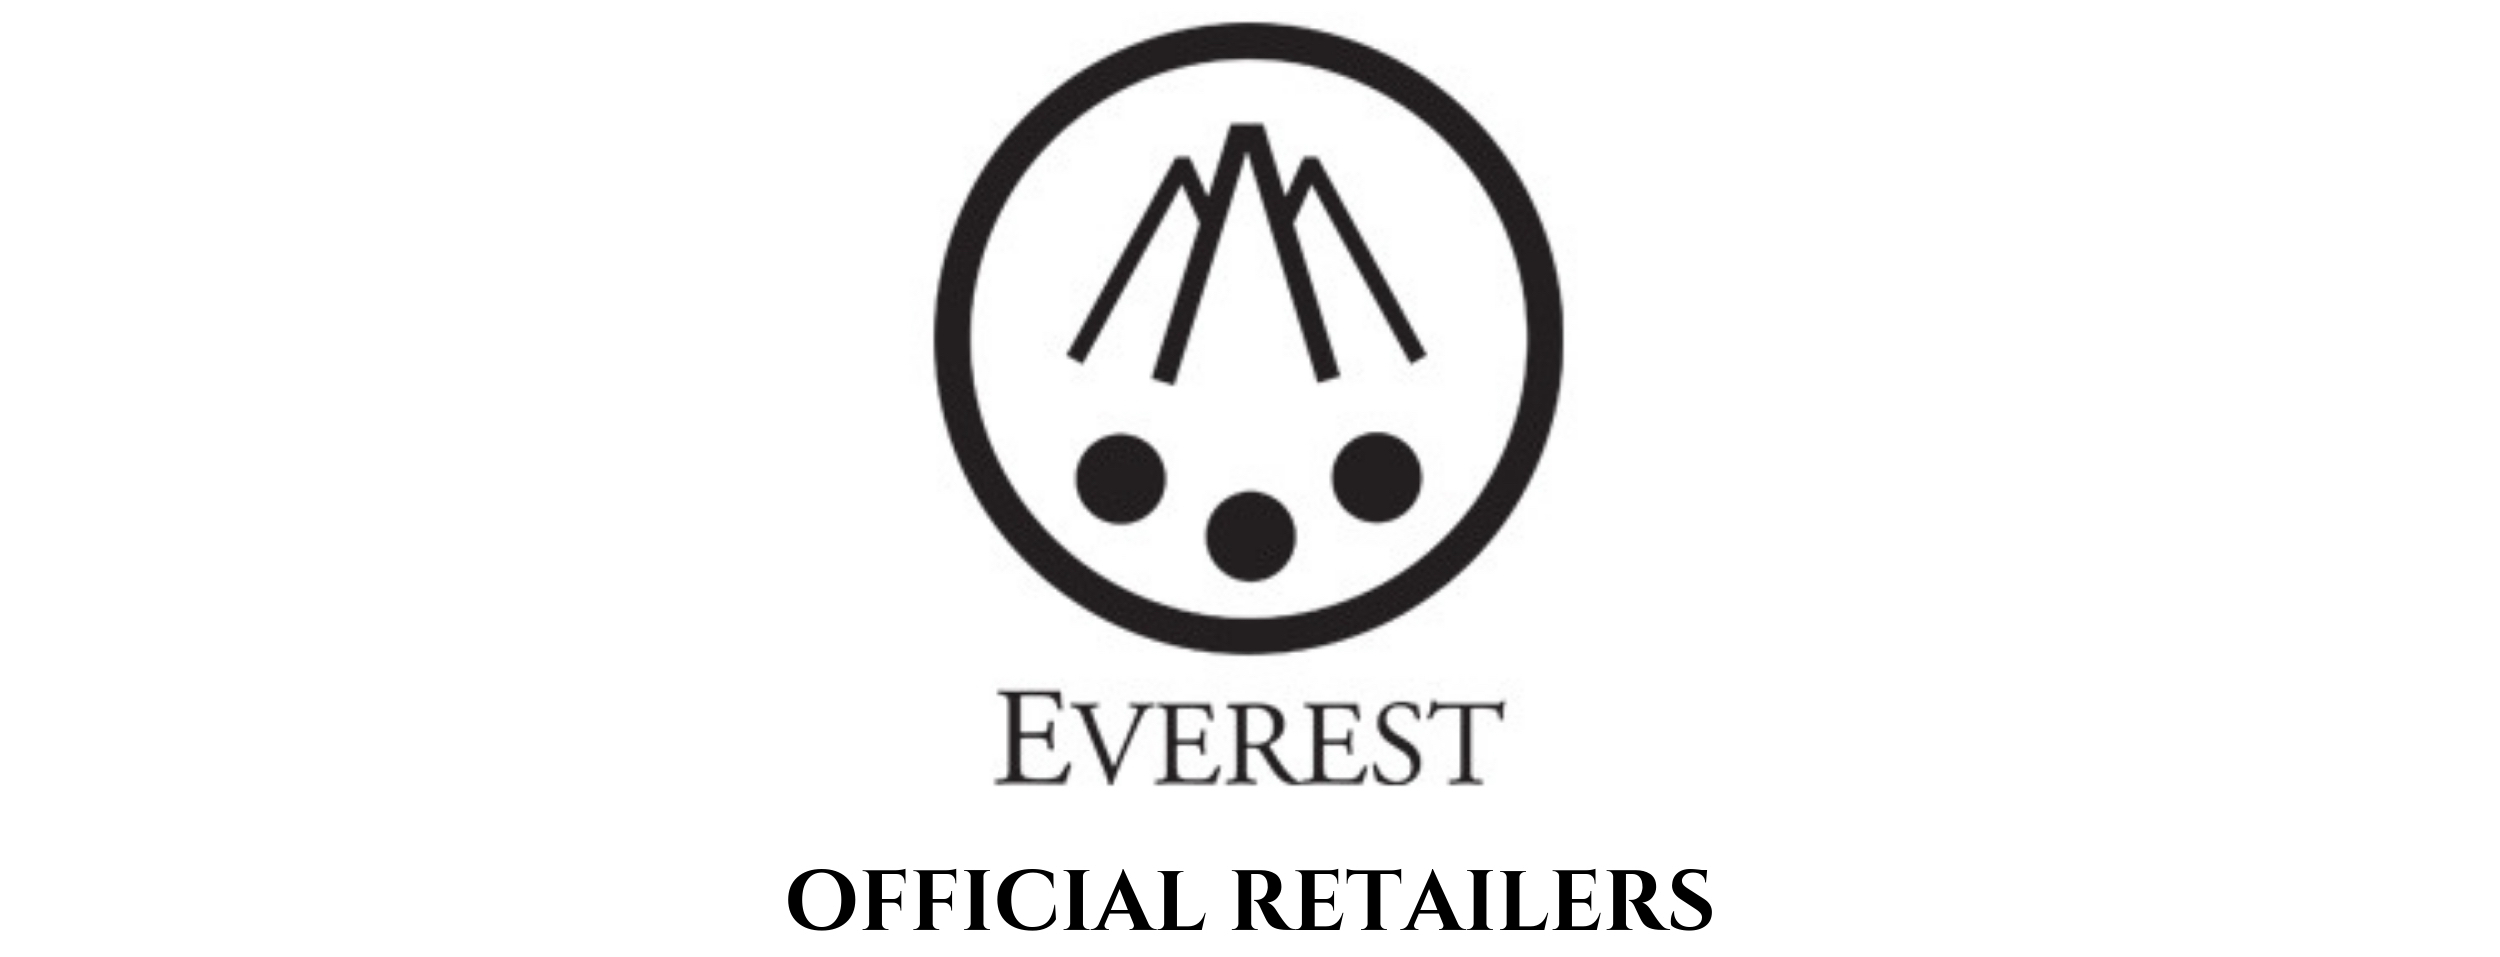 Everest Bands watch straps Official Retailers Millenary Watches